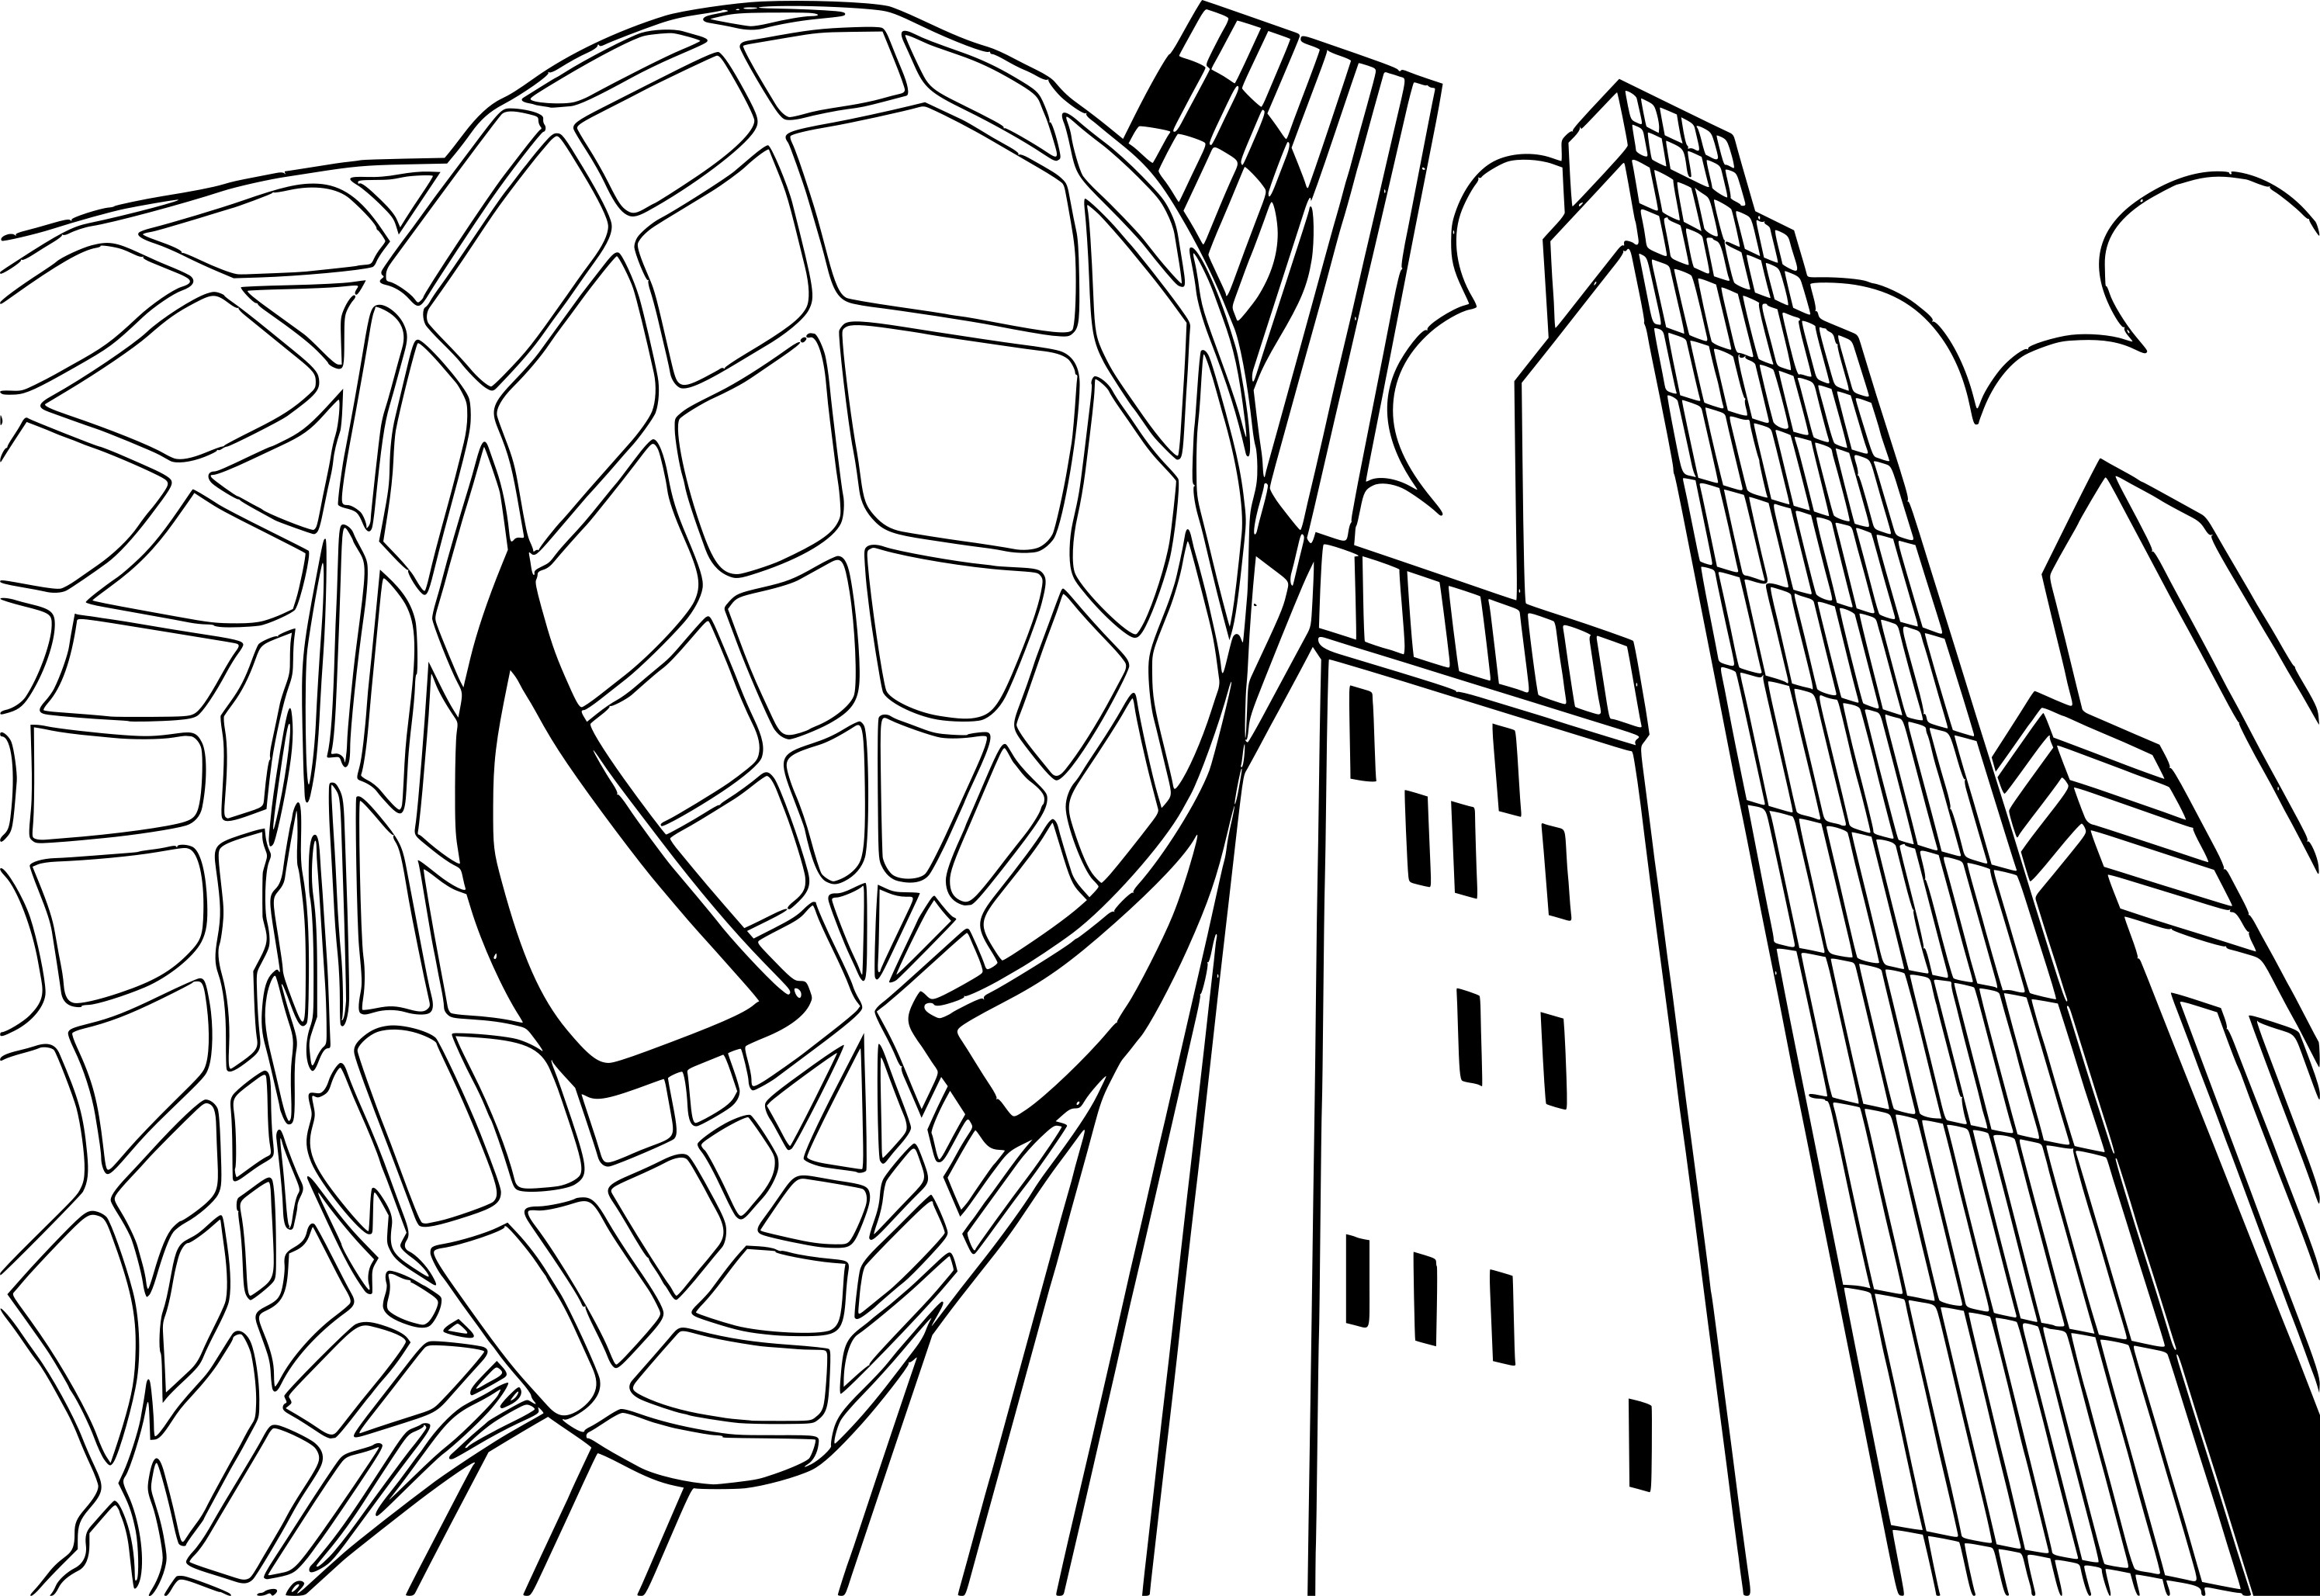 Coloriage spiderman 4 imprimer - Coloriage imprime ...